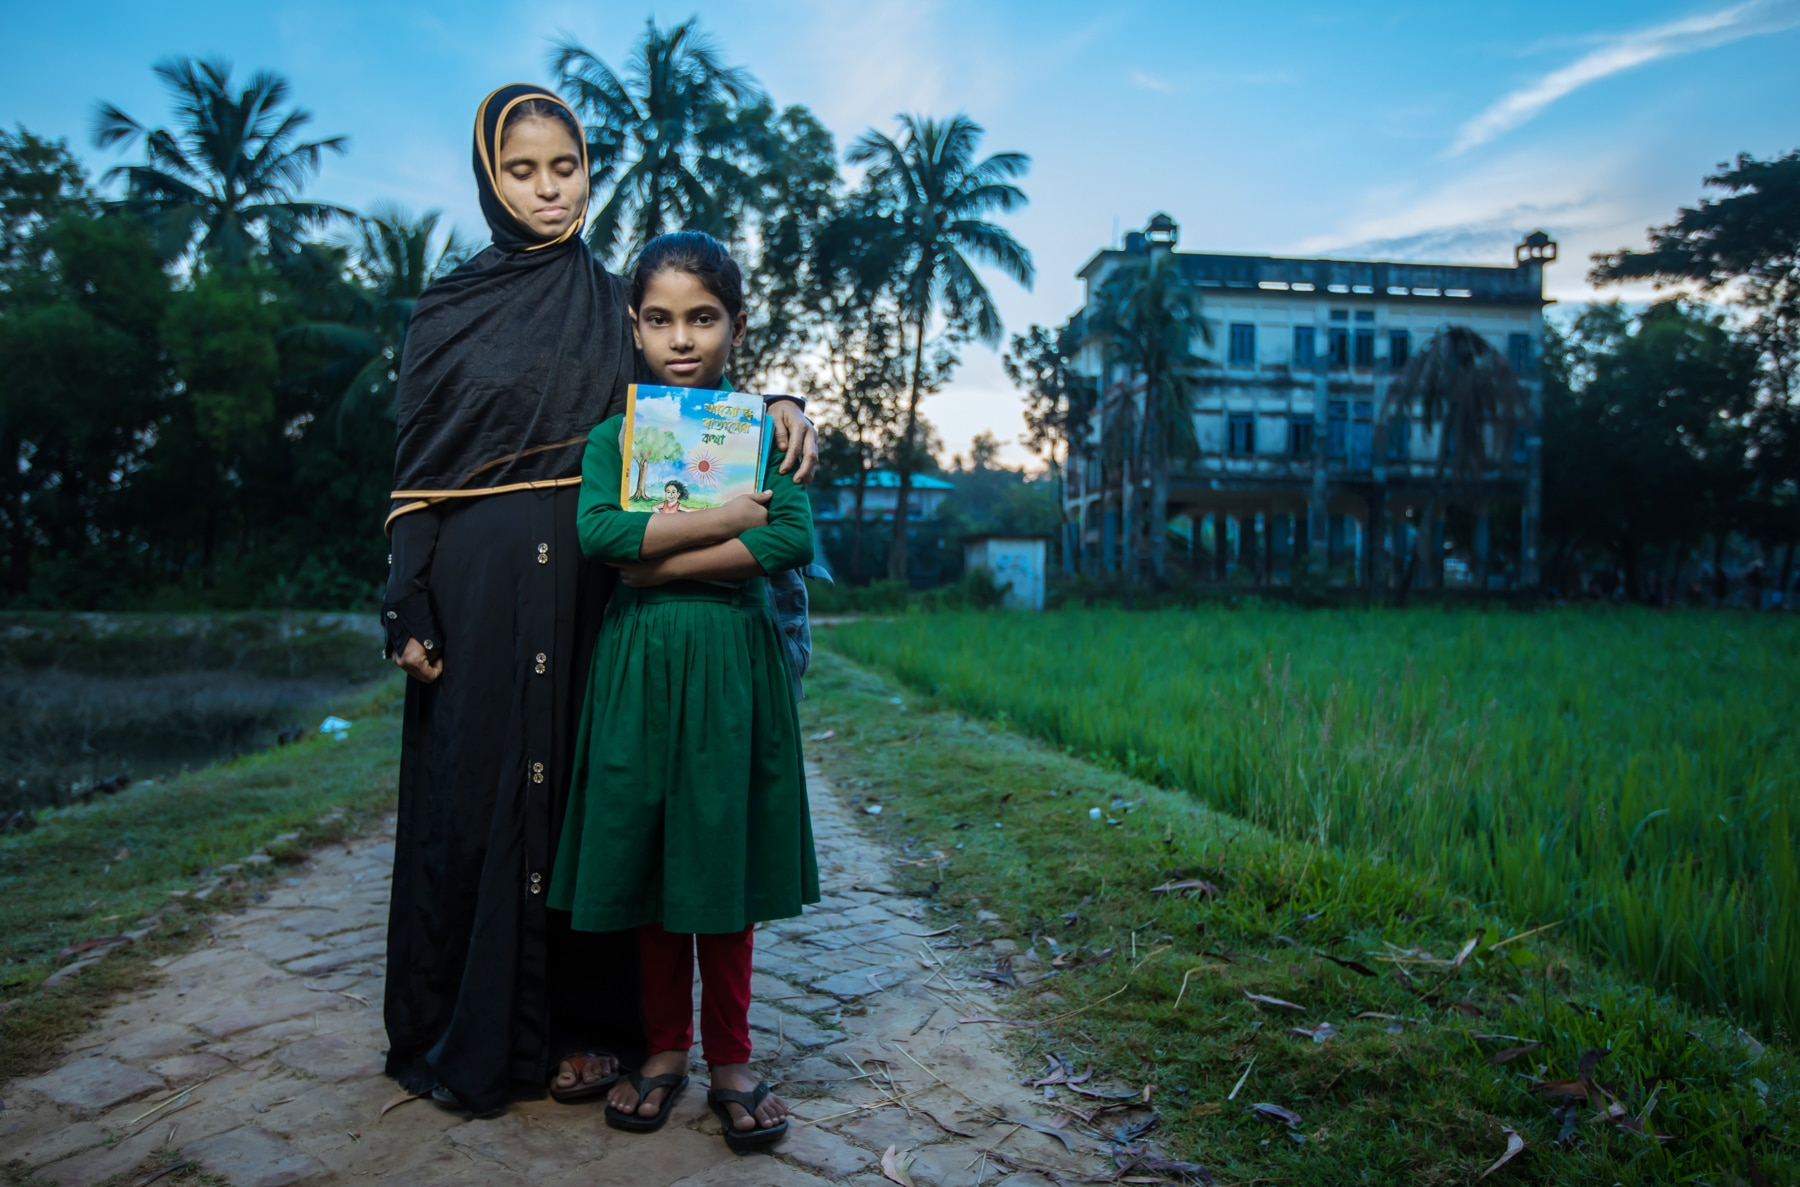 Mother and daughter standing on walkway, daughter holding book (USAID/Morgana Wingard)